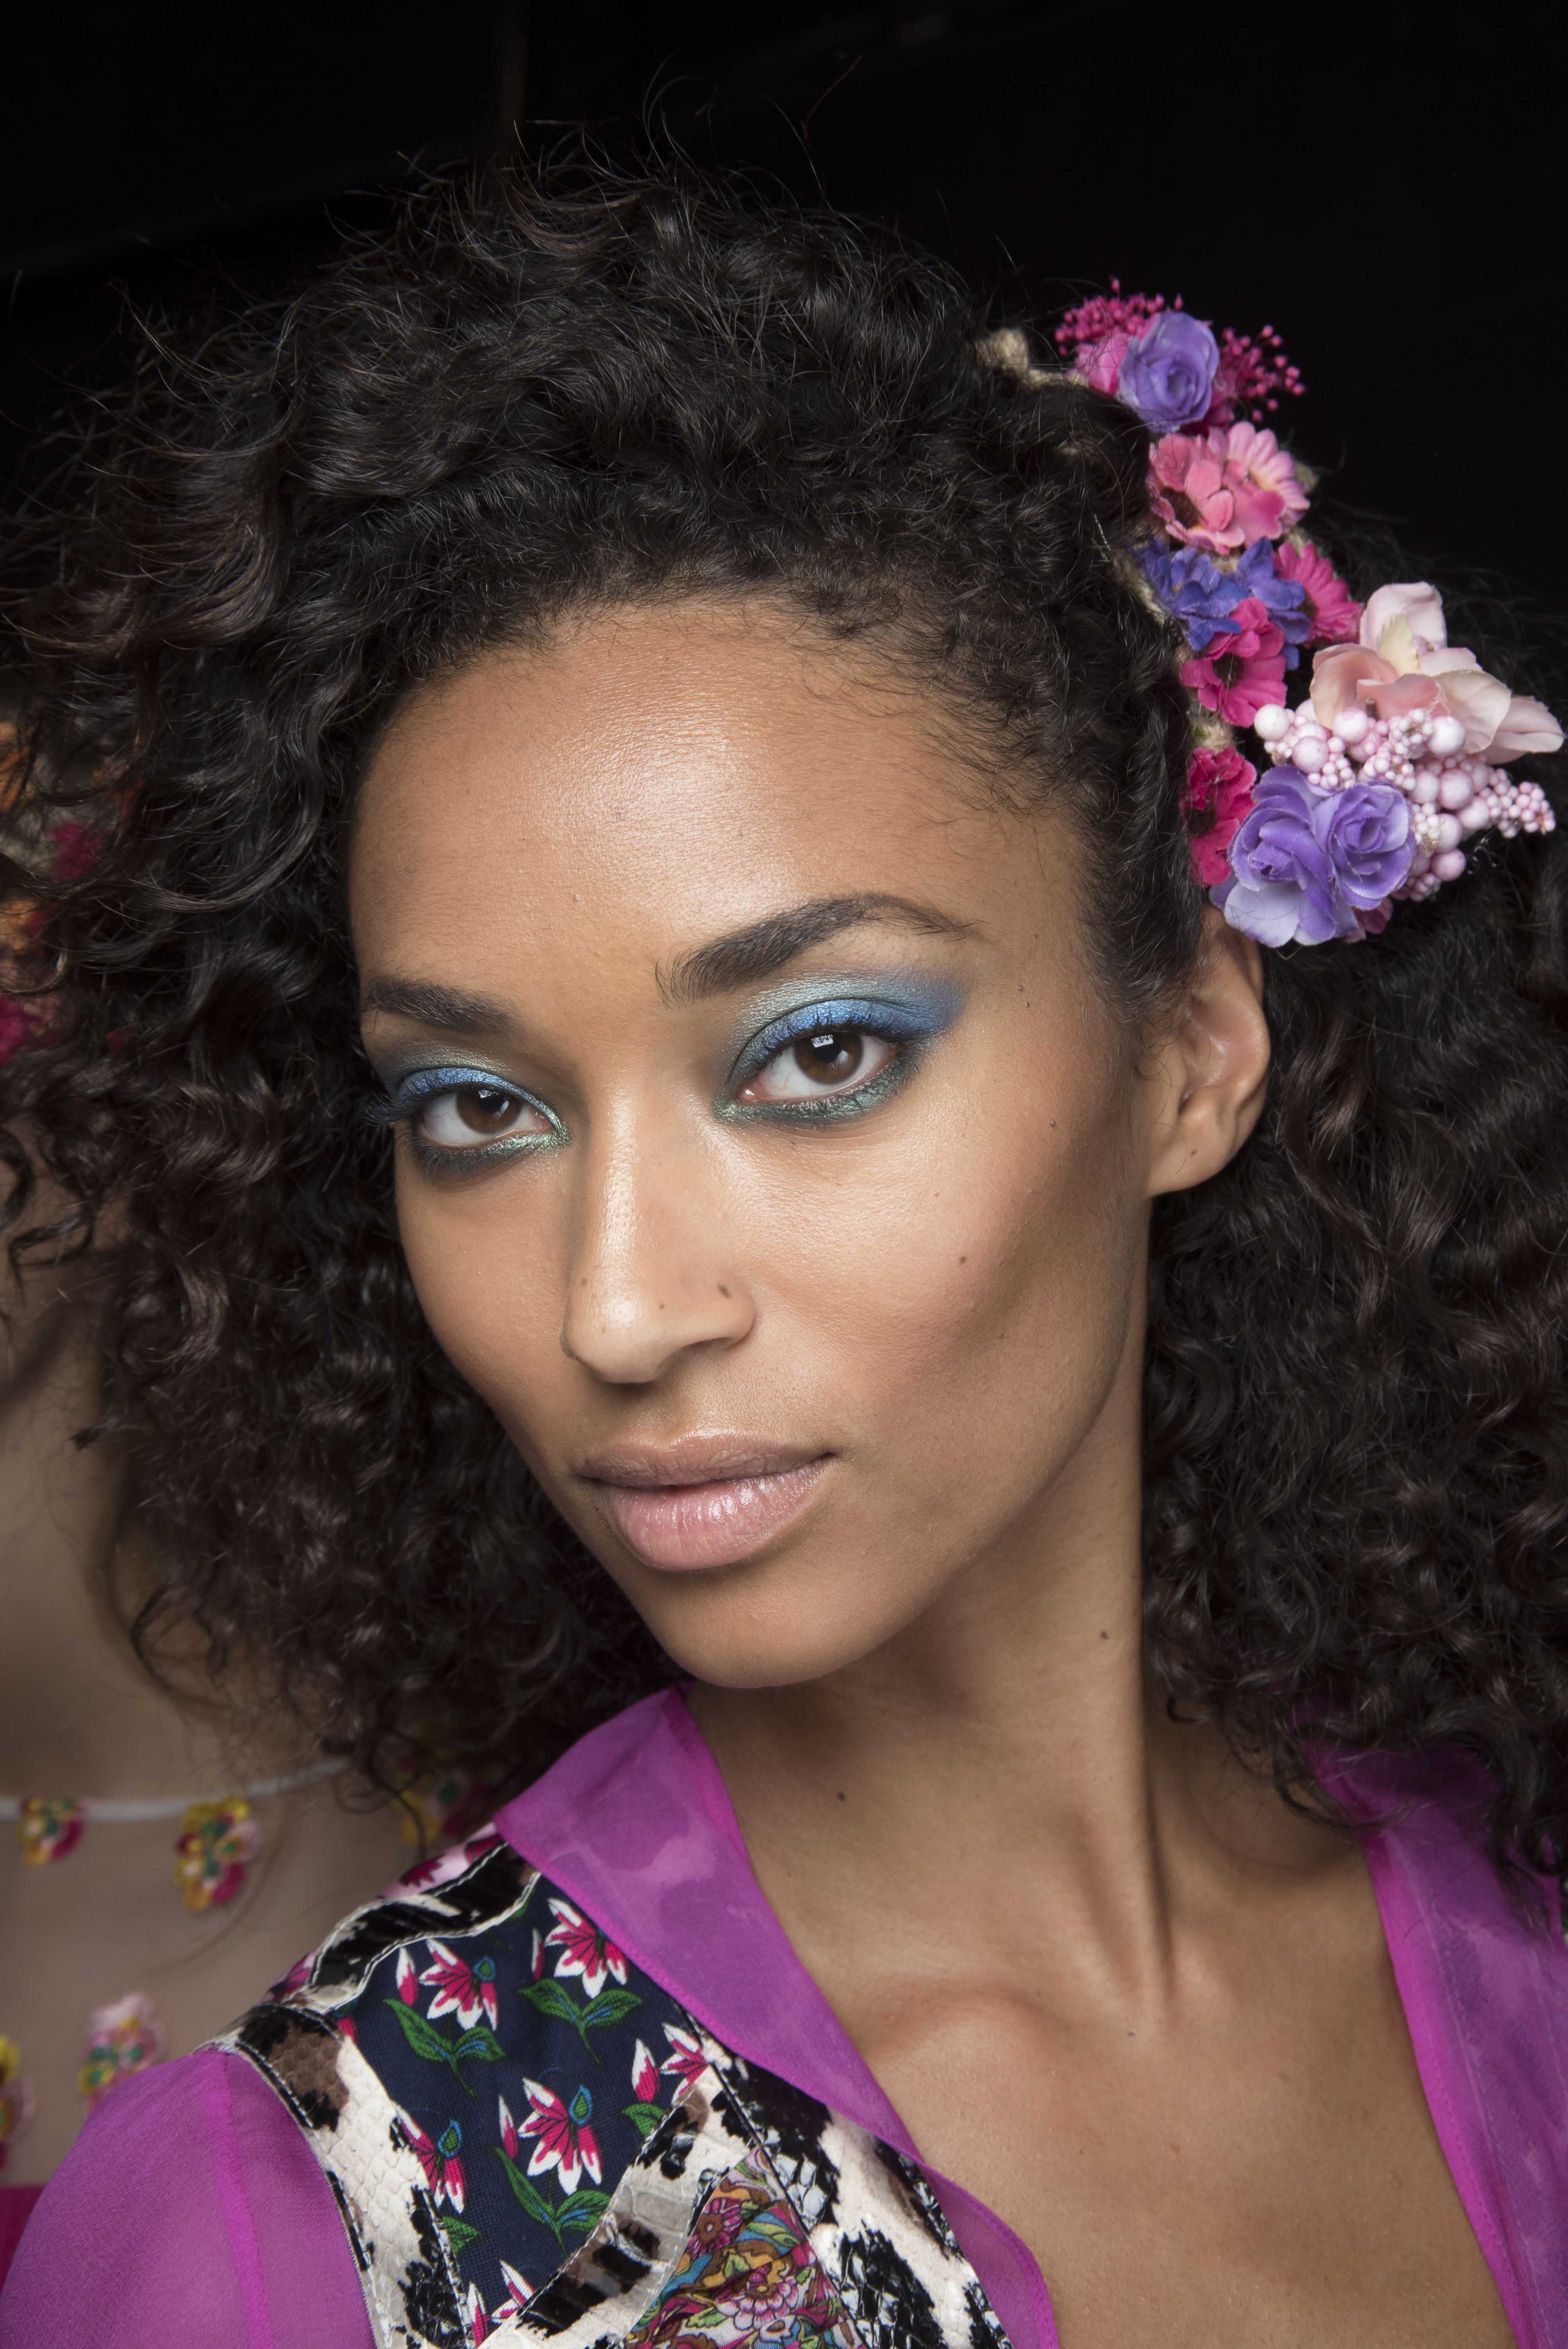 floral hair accessories styles for curly hair